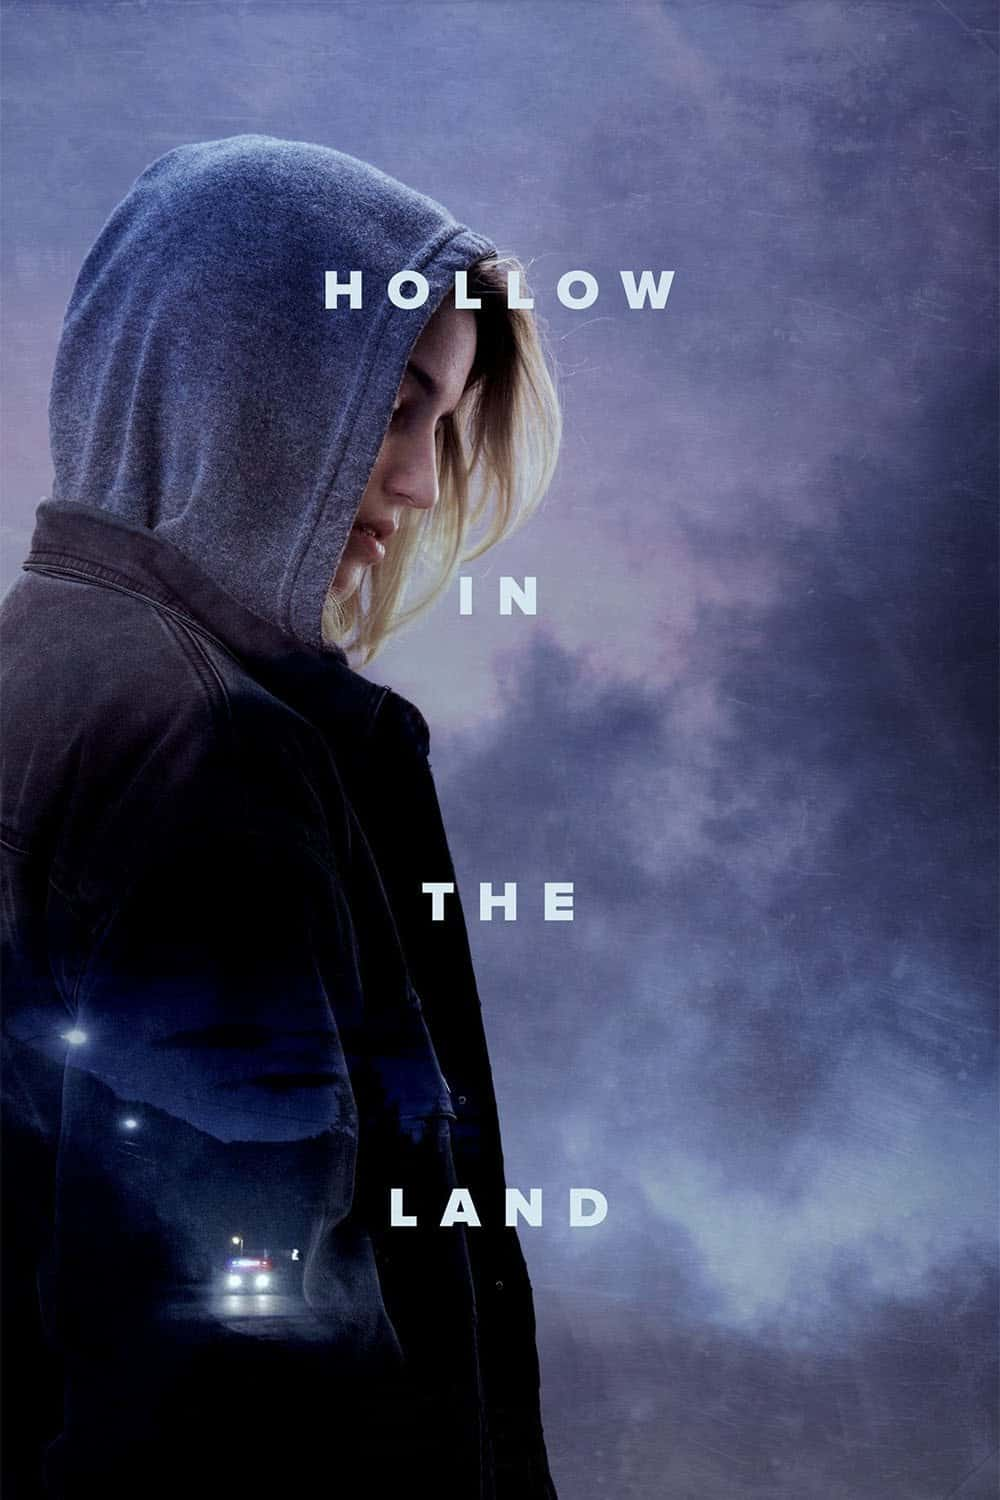 Hollow in the Land, 2017